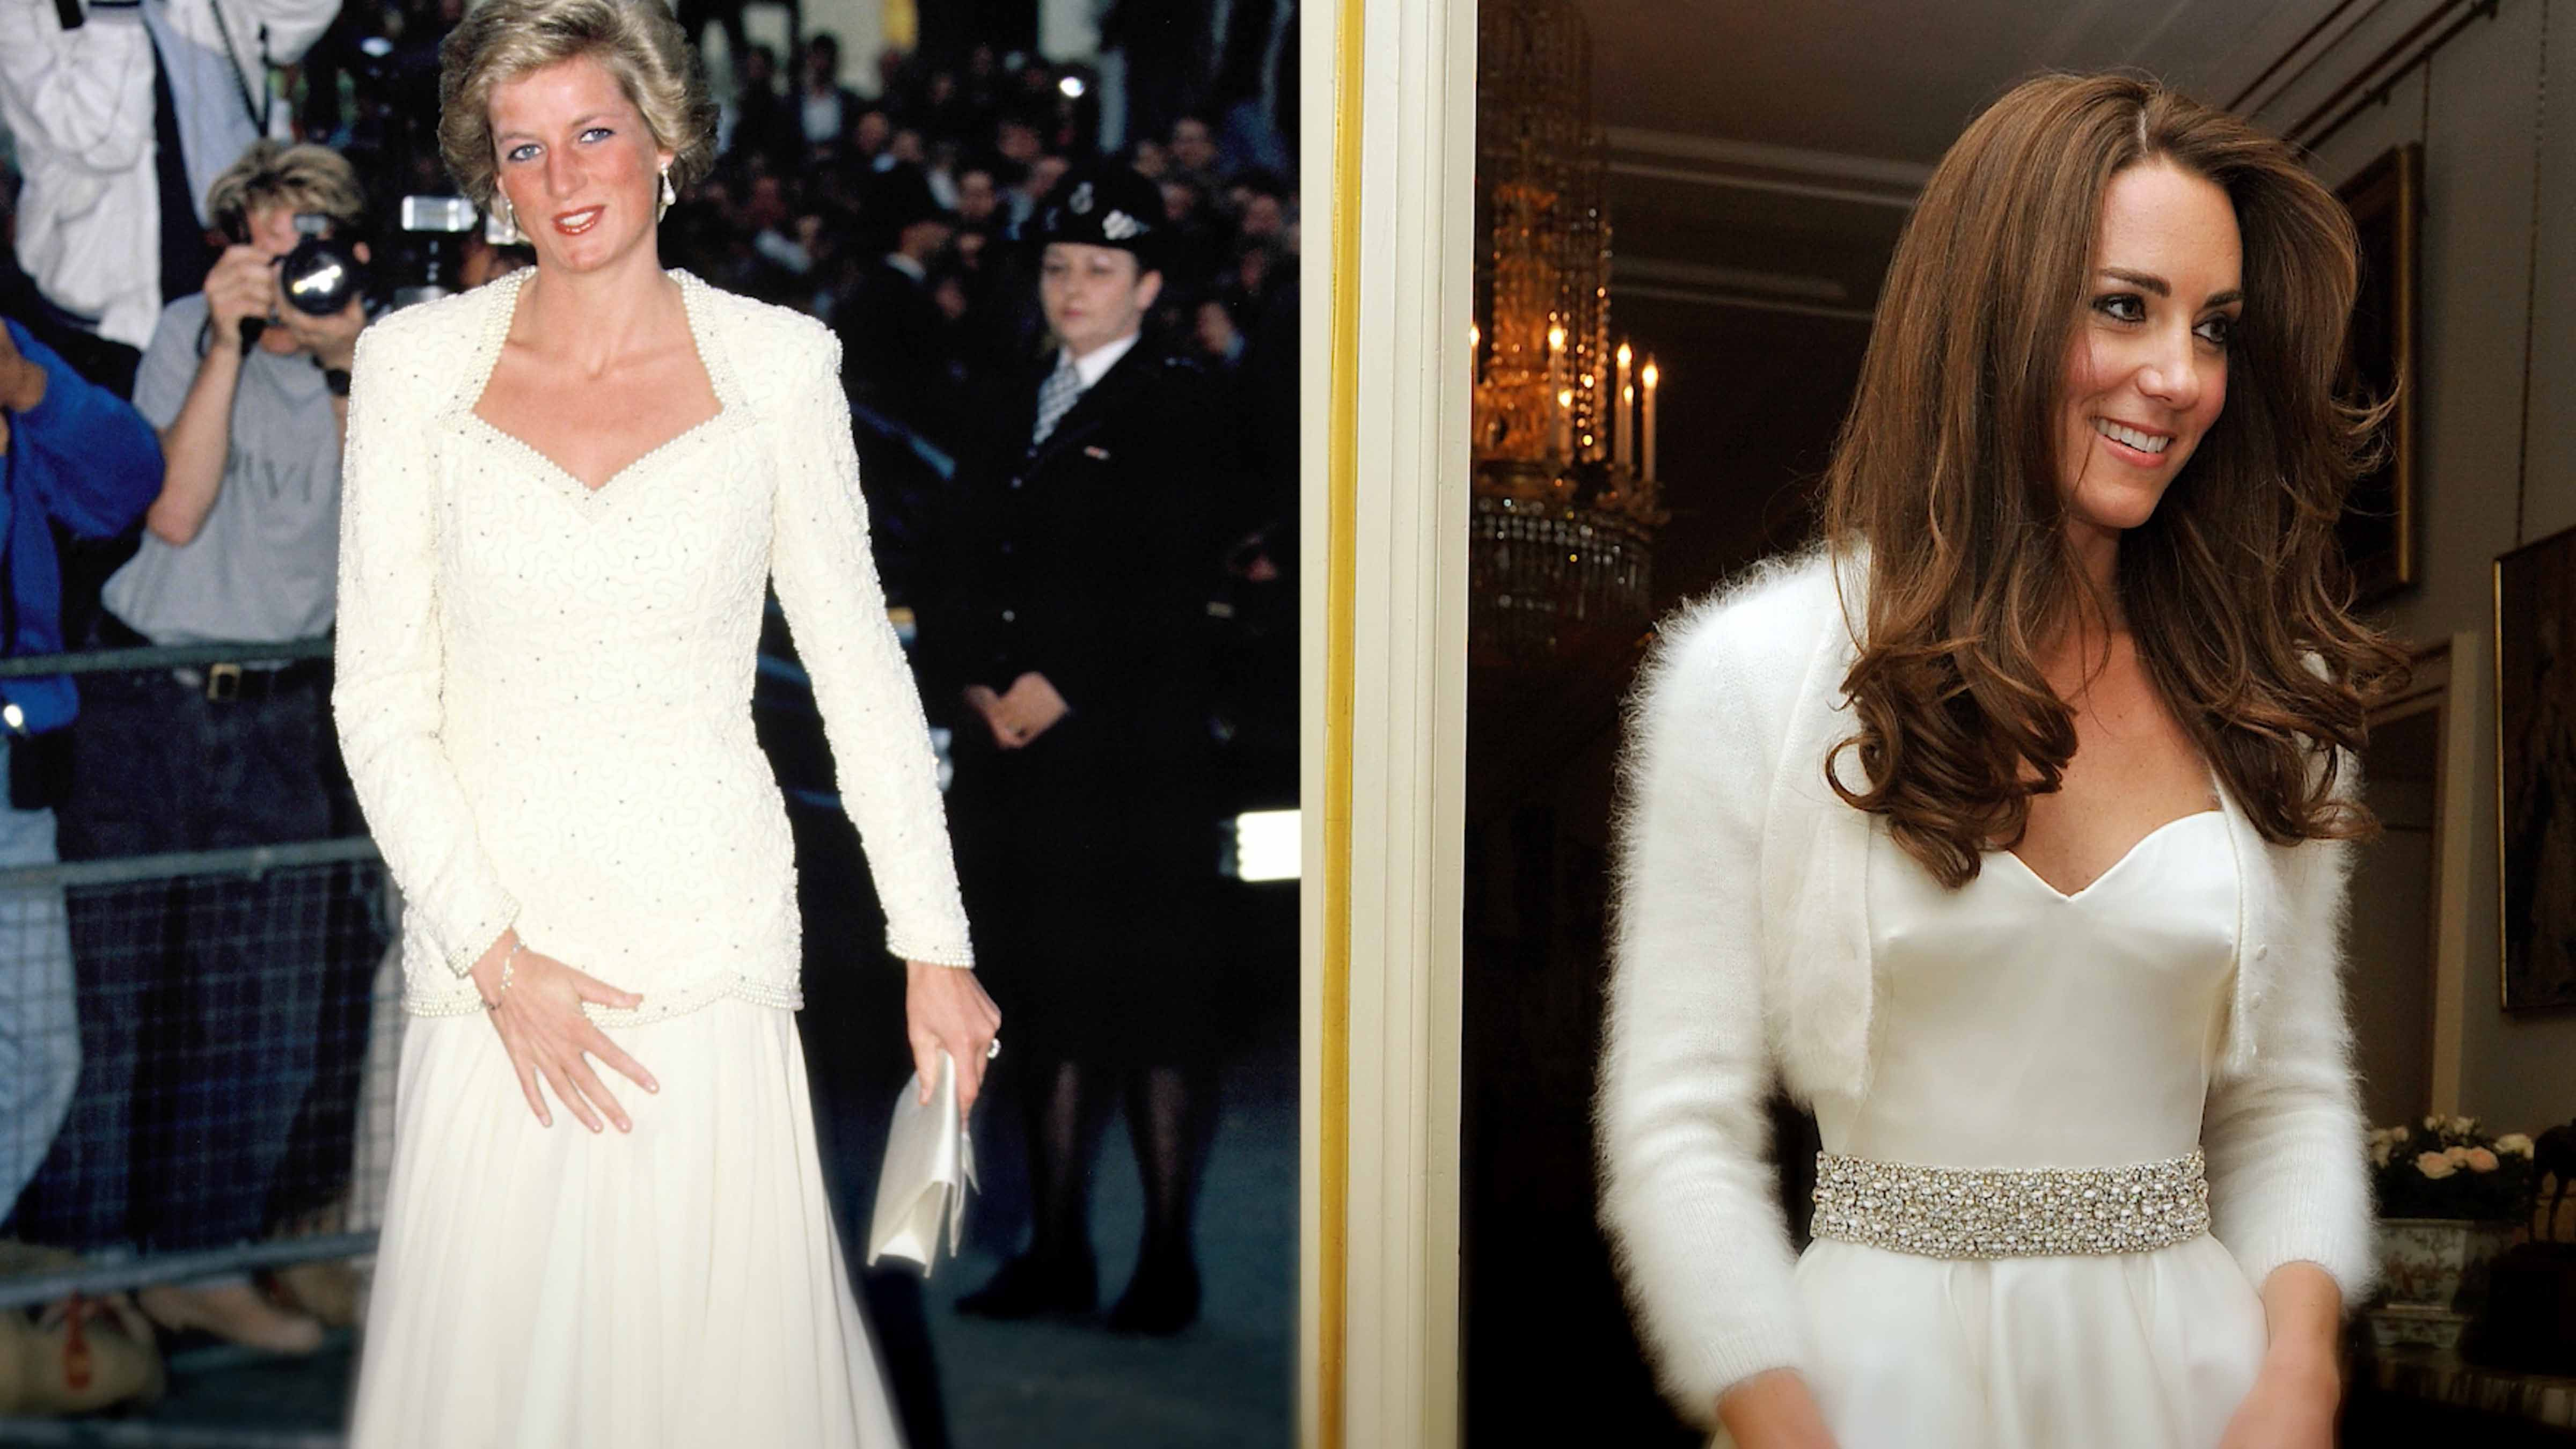 Kate Middleton Channels Princess Diana's Style as She Arrives in Pakistan